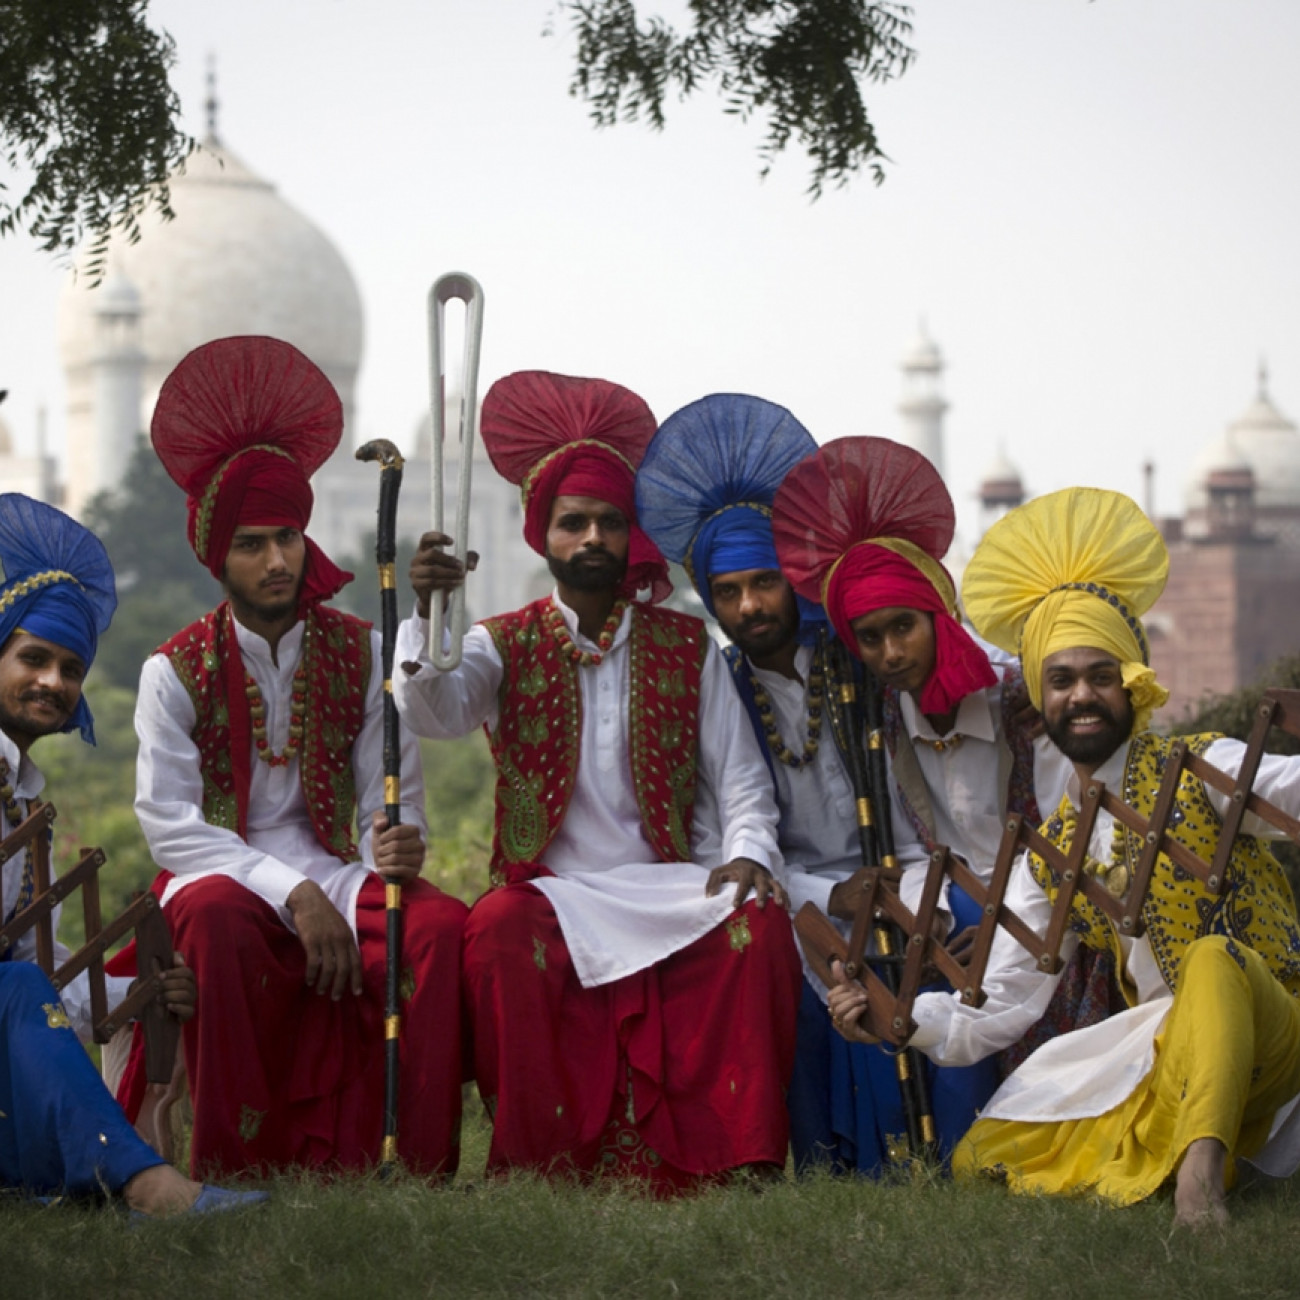 A band of musicians with the Baton in Agra with the Taj Mahal in the background